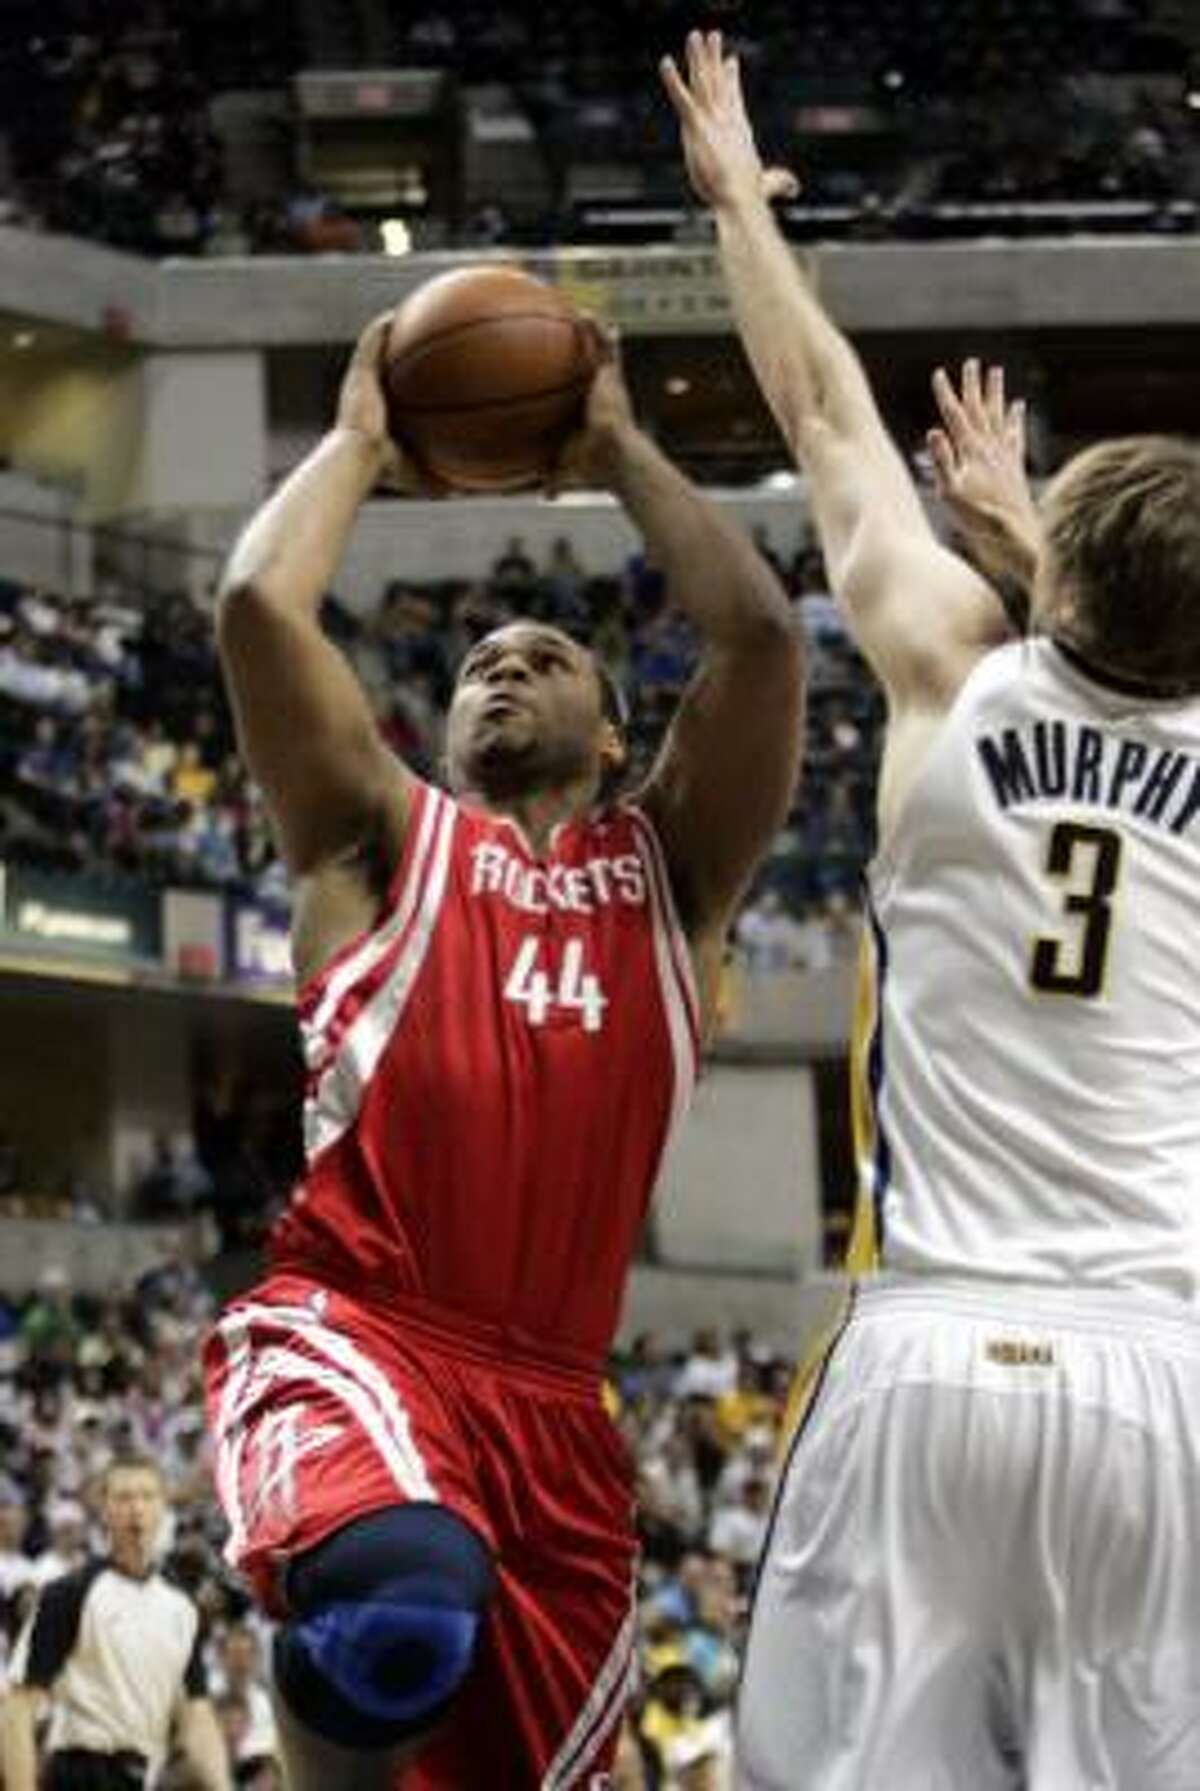 Rockets' Chuck Hayes puts up a shot as Pacers' Troy Murphy defends.